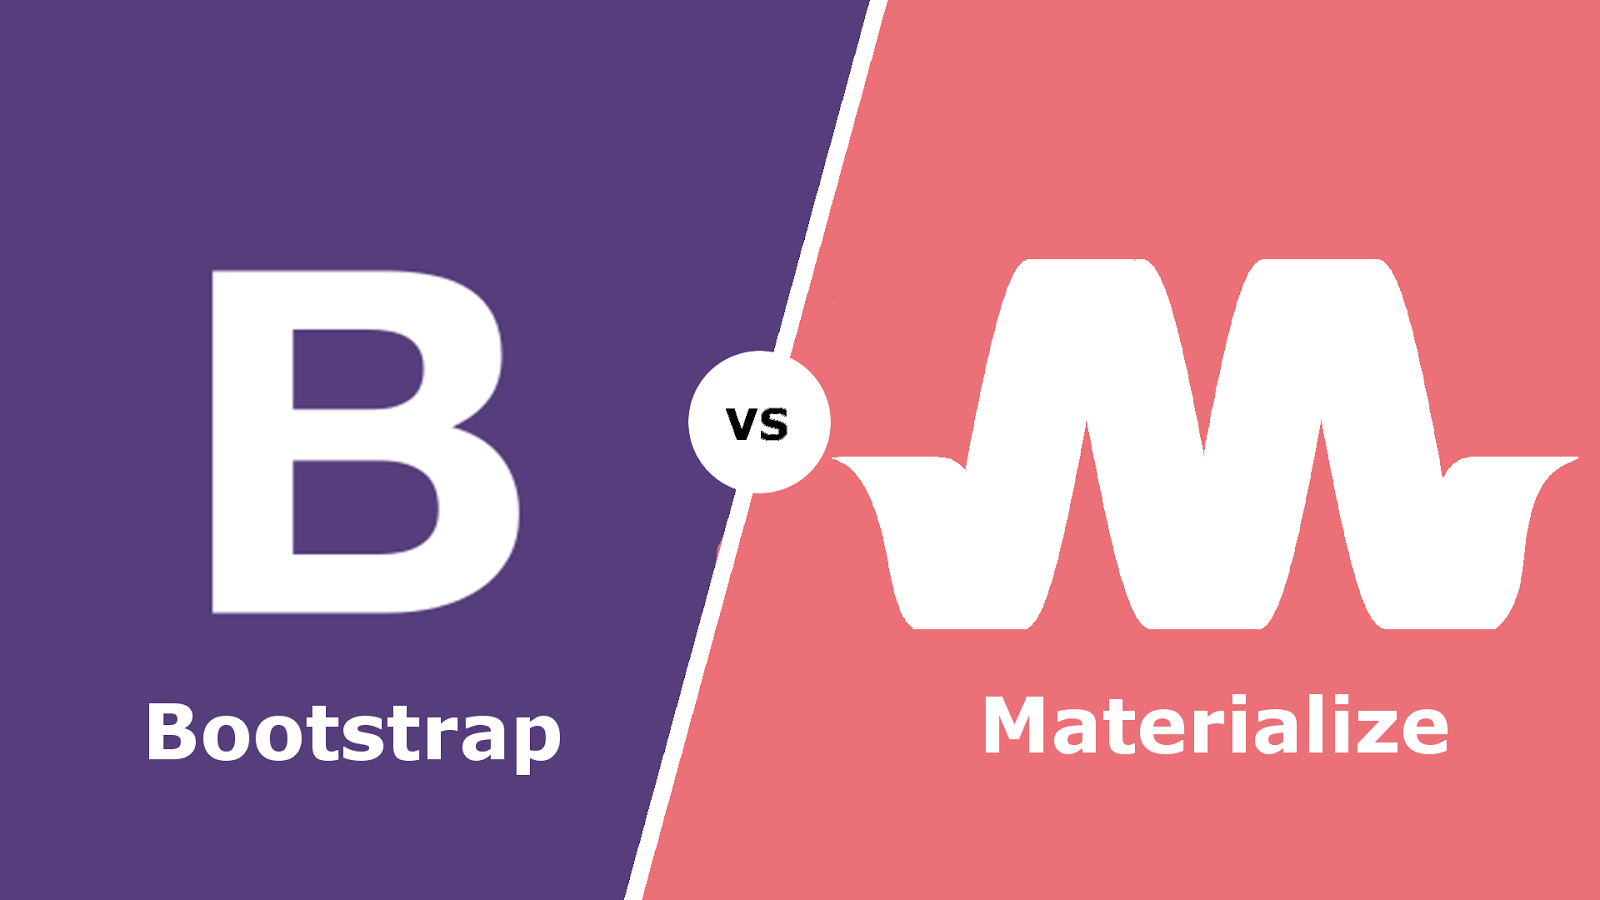 Bootstrap vs Materialize